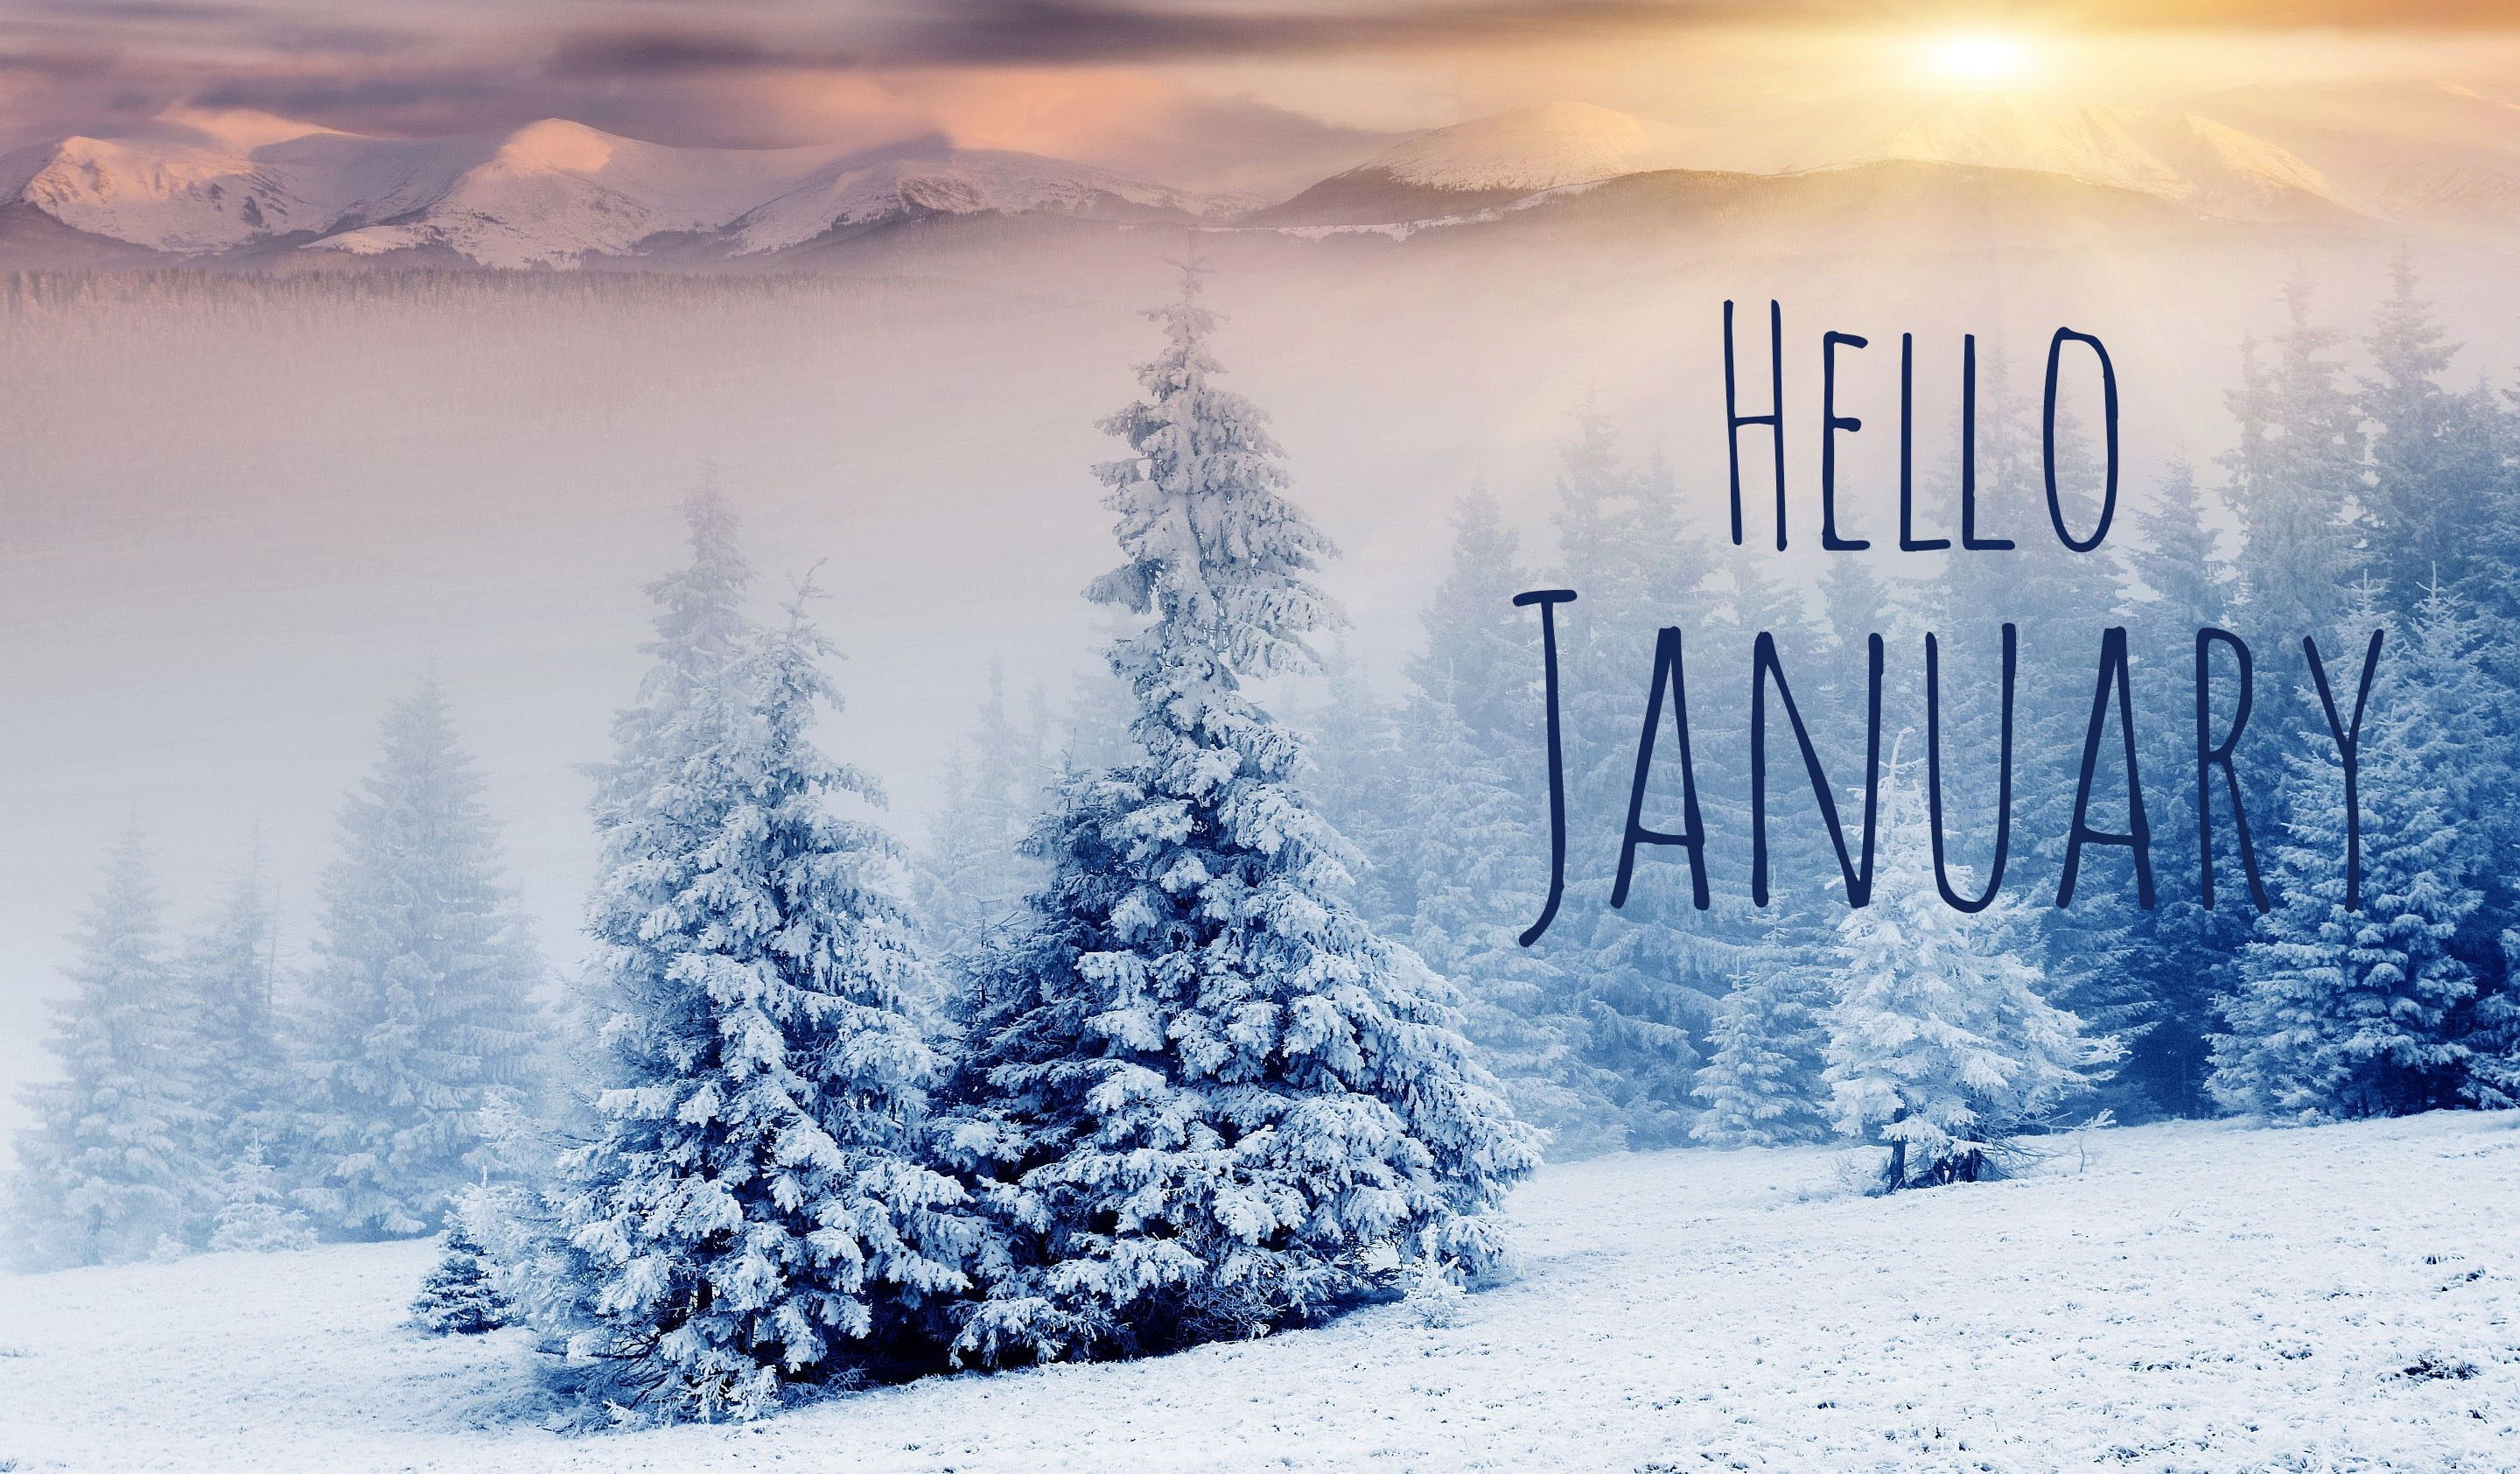 2880x1684 Hello January Images Free Download | January images, January ...